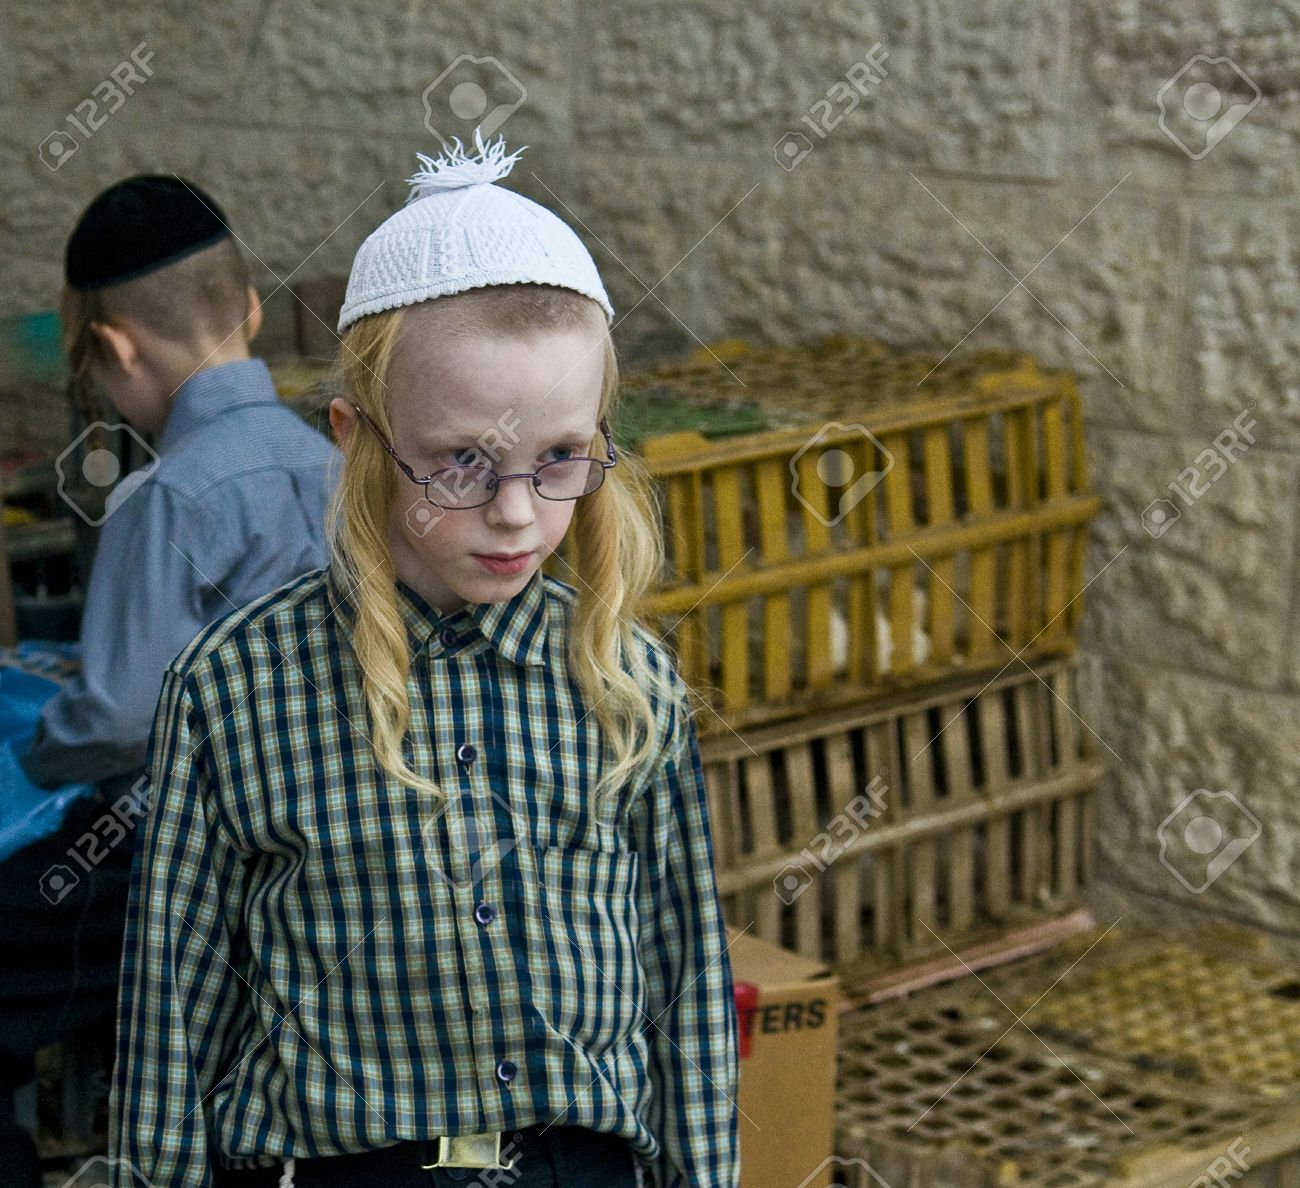 JERUSALEM - OCT 06  : An ultra Orthodox Jewish boy near a cages with chickens use for the Kapparot ceremony held in Jerusalem Israel on October 06 2011 Stock Photo - 10807662